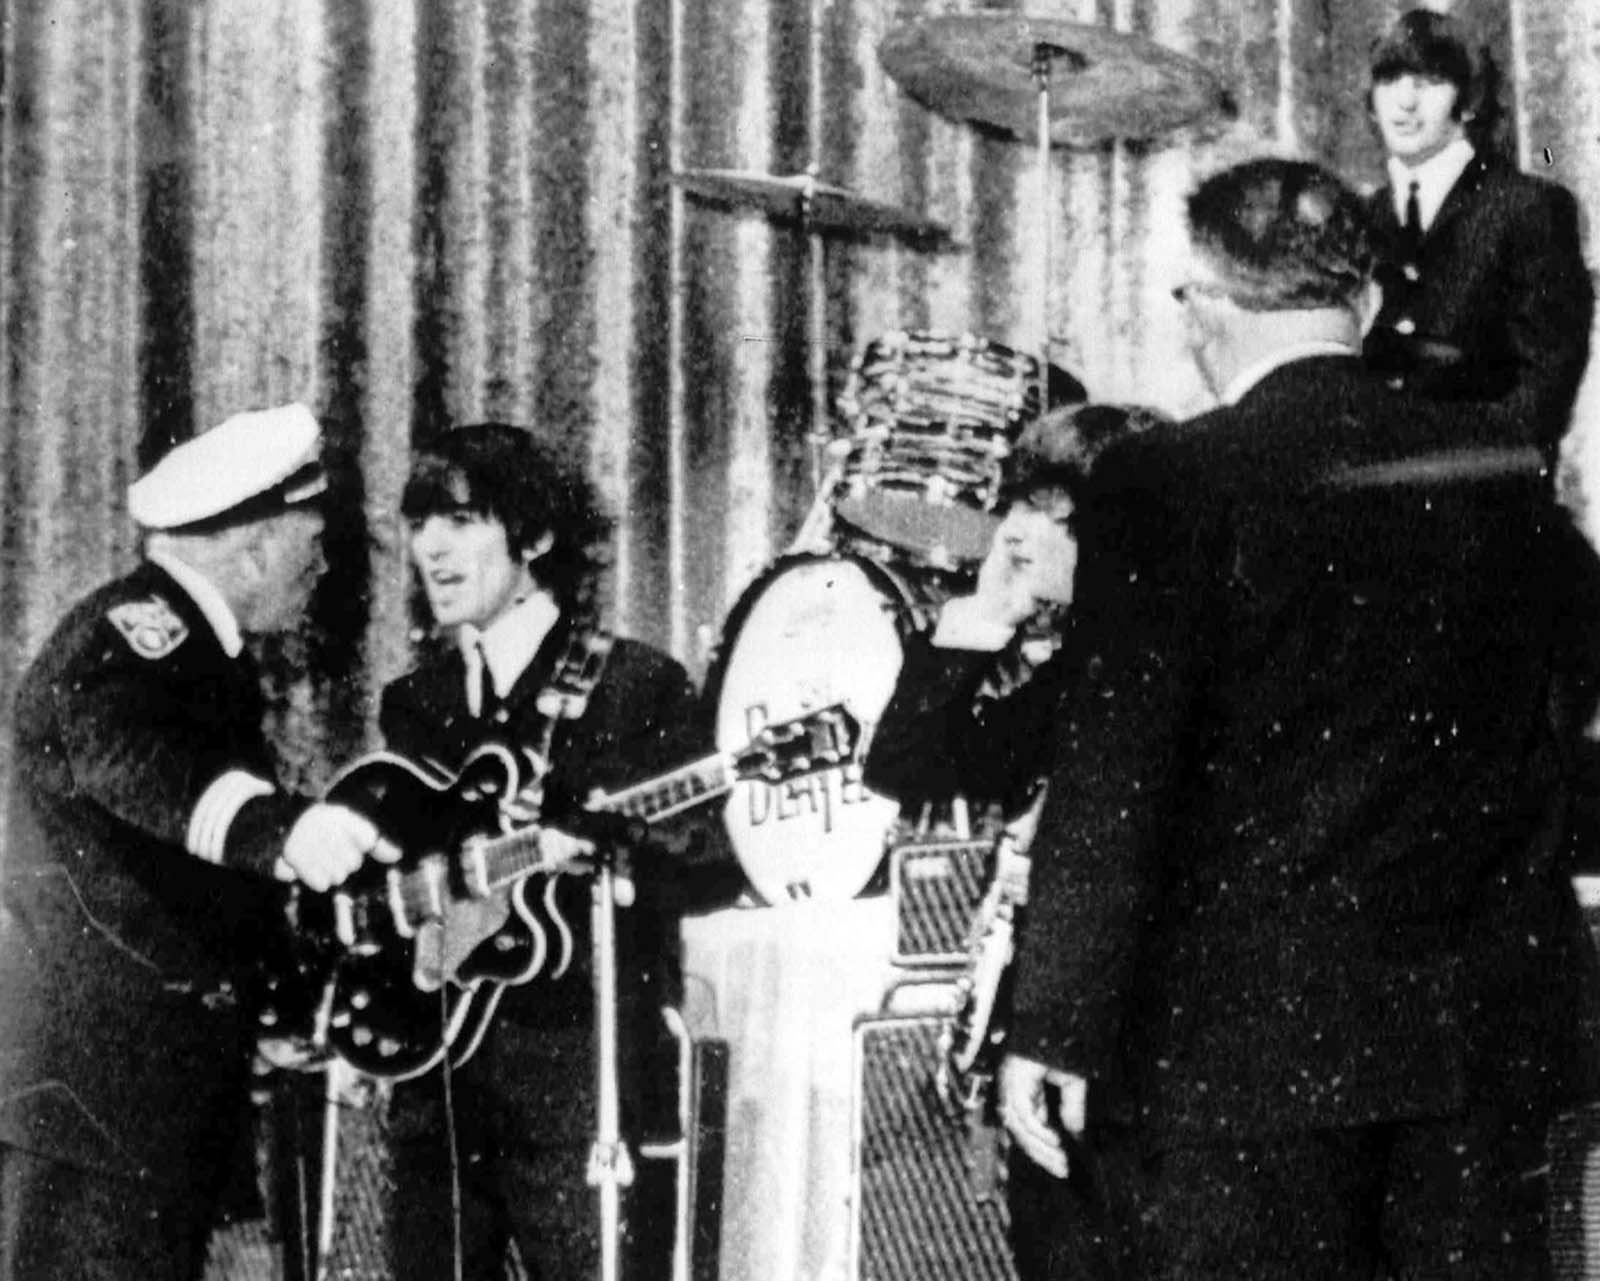 Police Inspector Carl Bear of Cleveland's Juvenile Bureau, left, orders George Harrison and the other members of the Beatles, off the stage of the Public hall, Cleveland, Ohio, on September 16, 1964 as teenagers rushed the stage. Bear let the group back on after wailing youngsters were given 15 minutes to cool down.